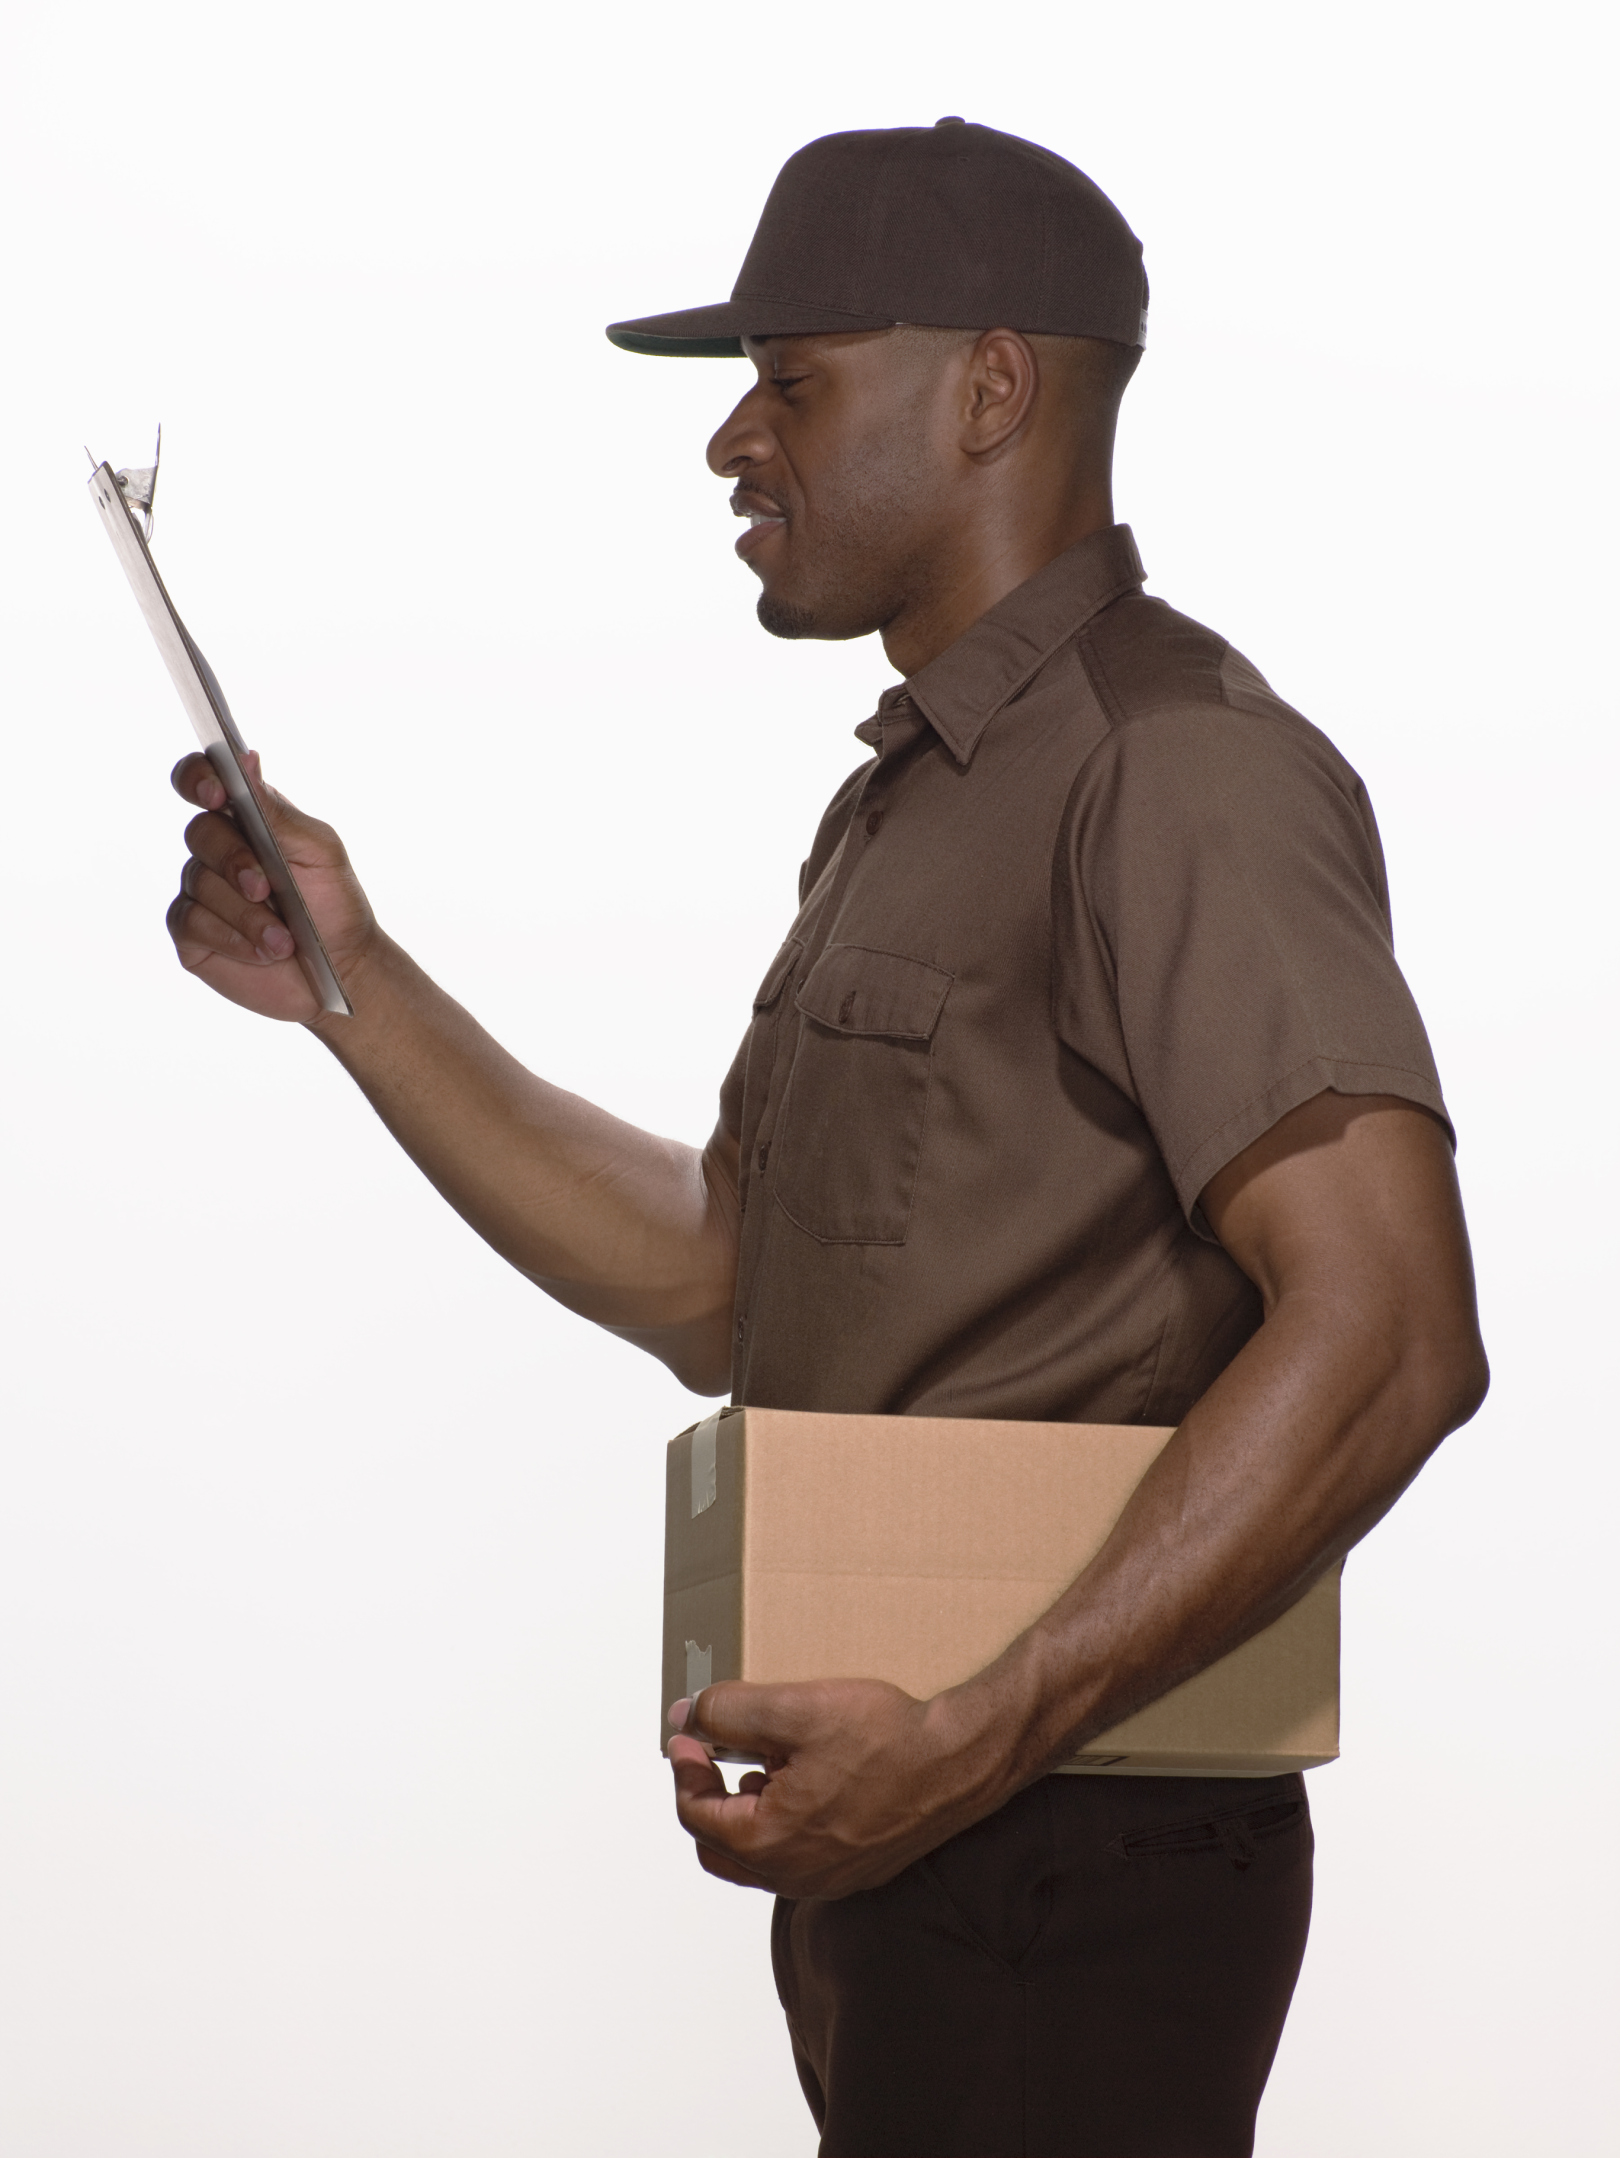 job responsibilities of a delivery driver